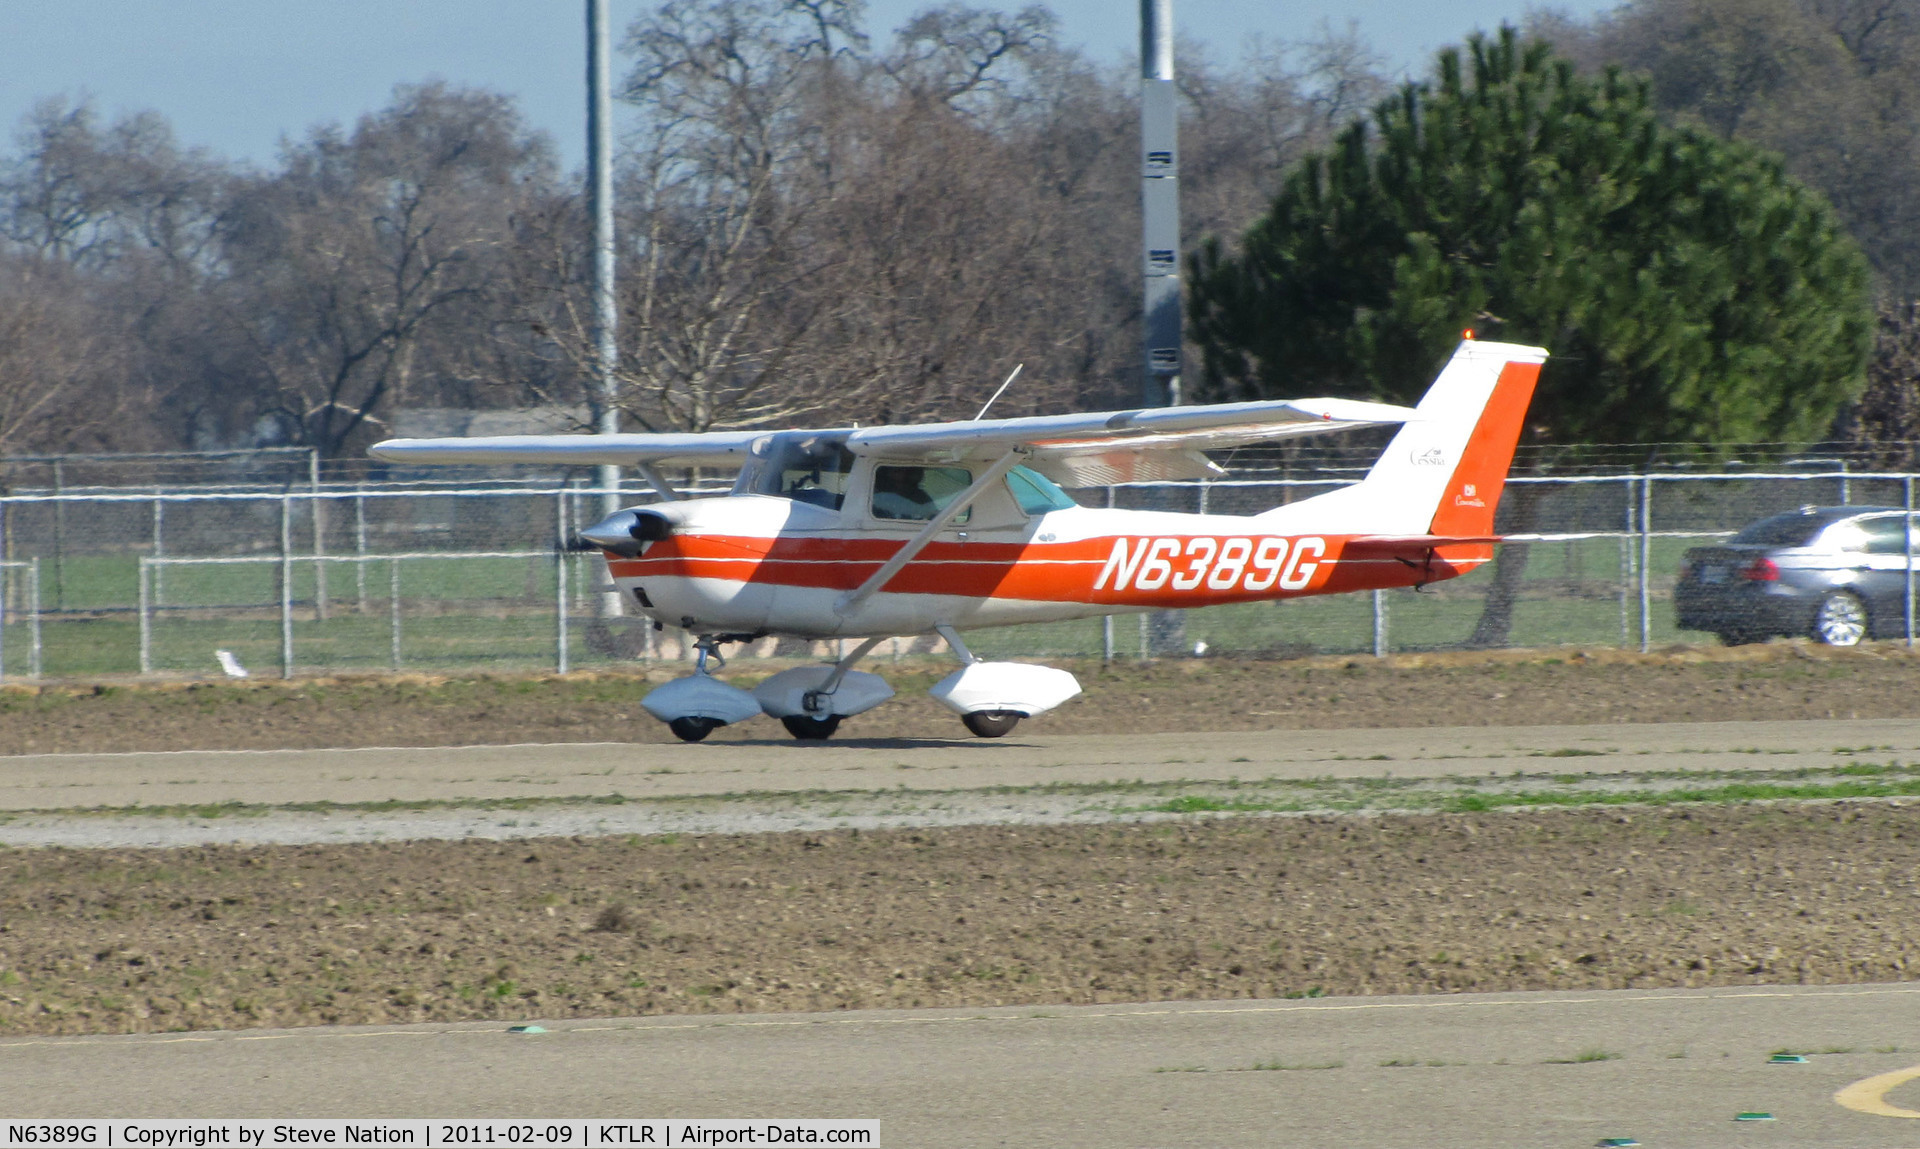 N6389G, 1970 Cessna 150K C/N 15071889, Wasco, CA-based 1970 Cessna 150K touching down @ Tulare, CA